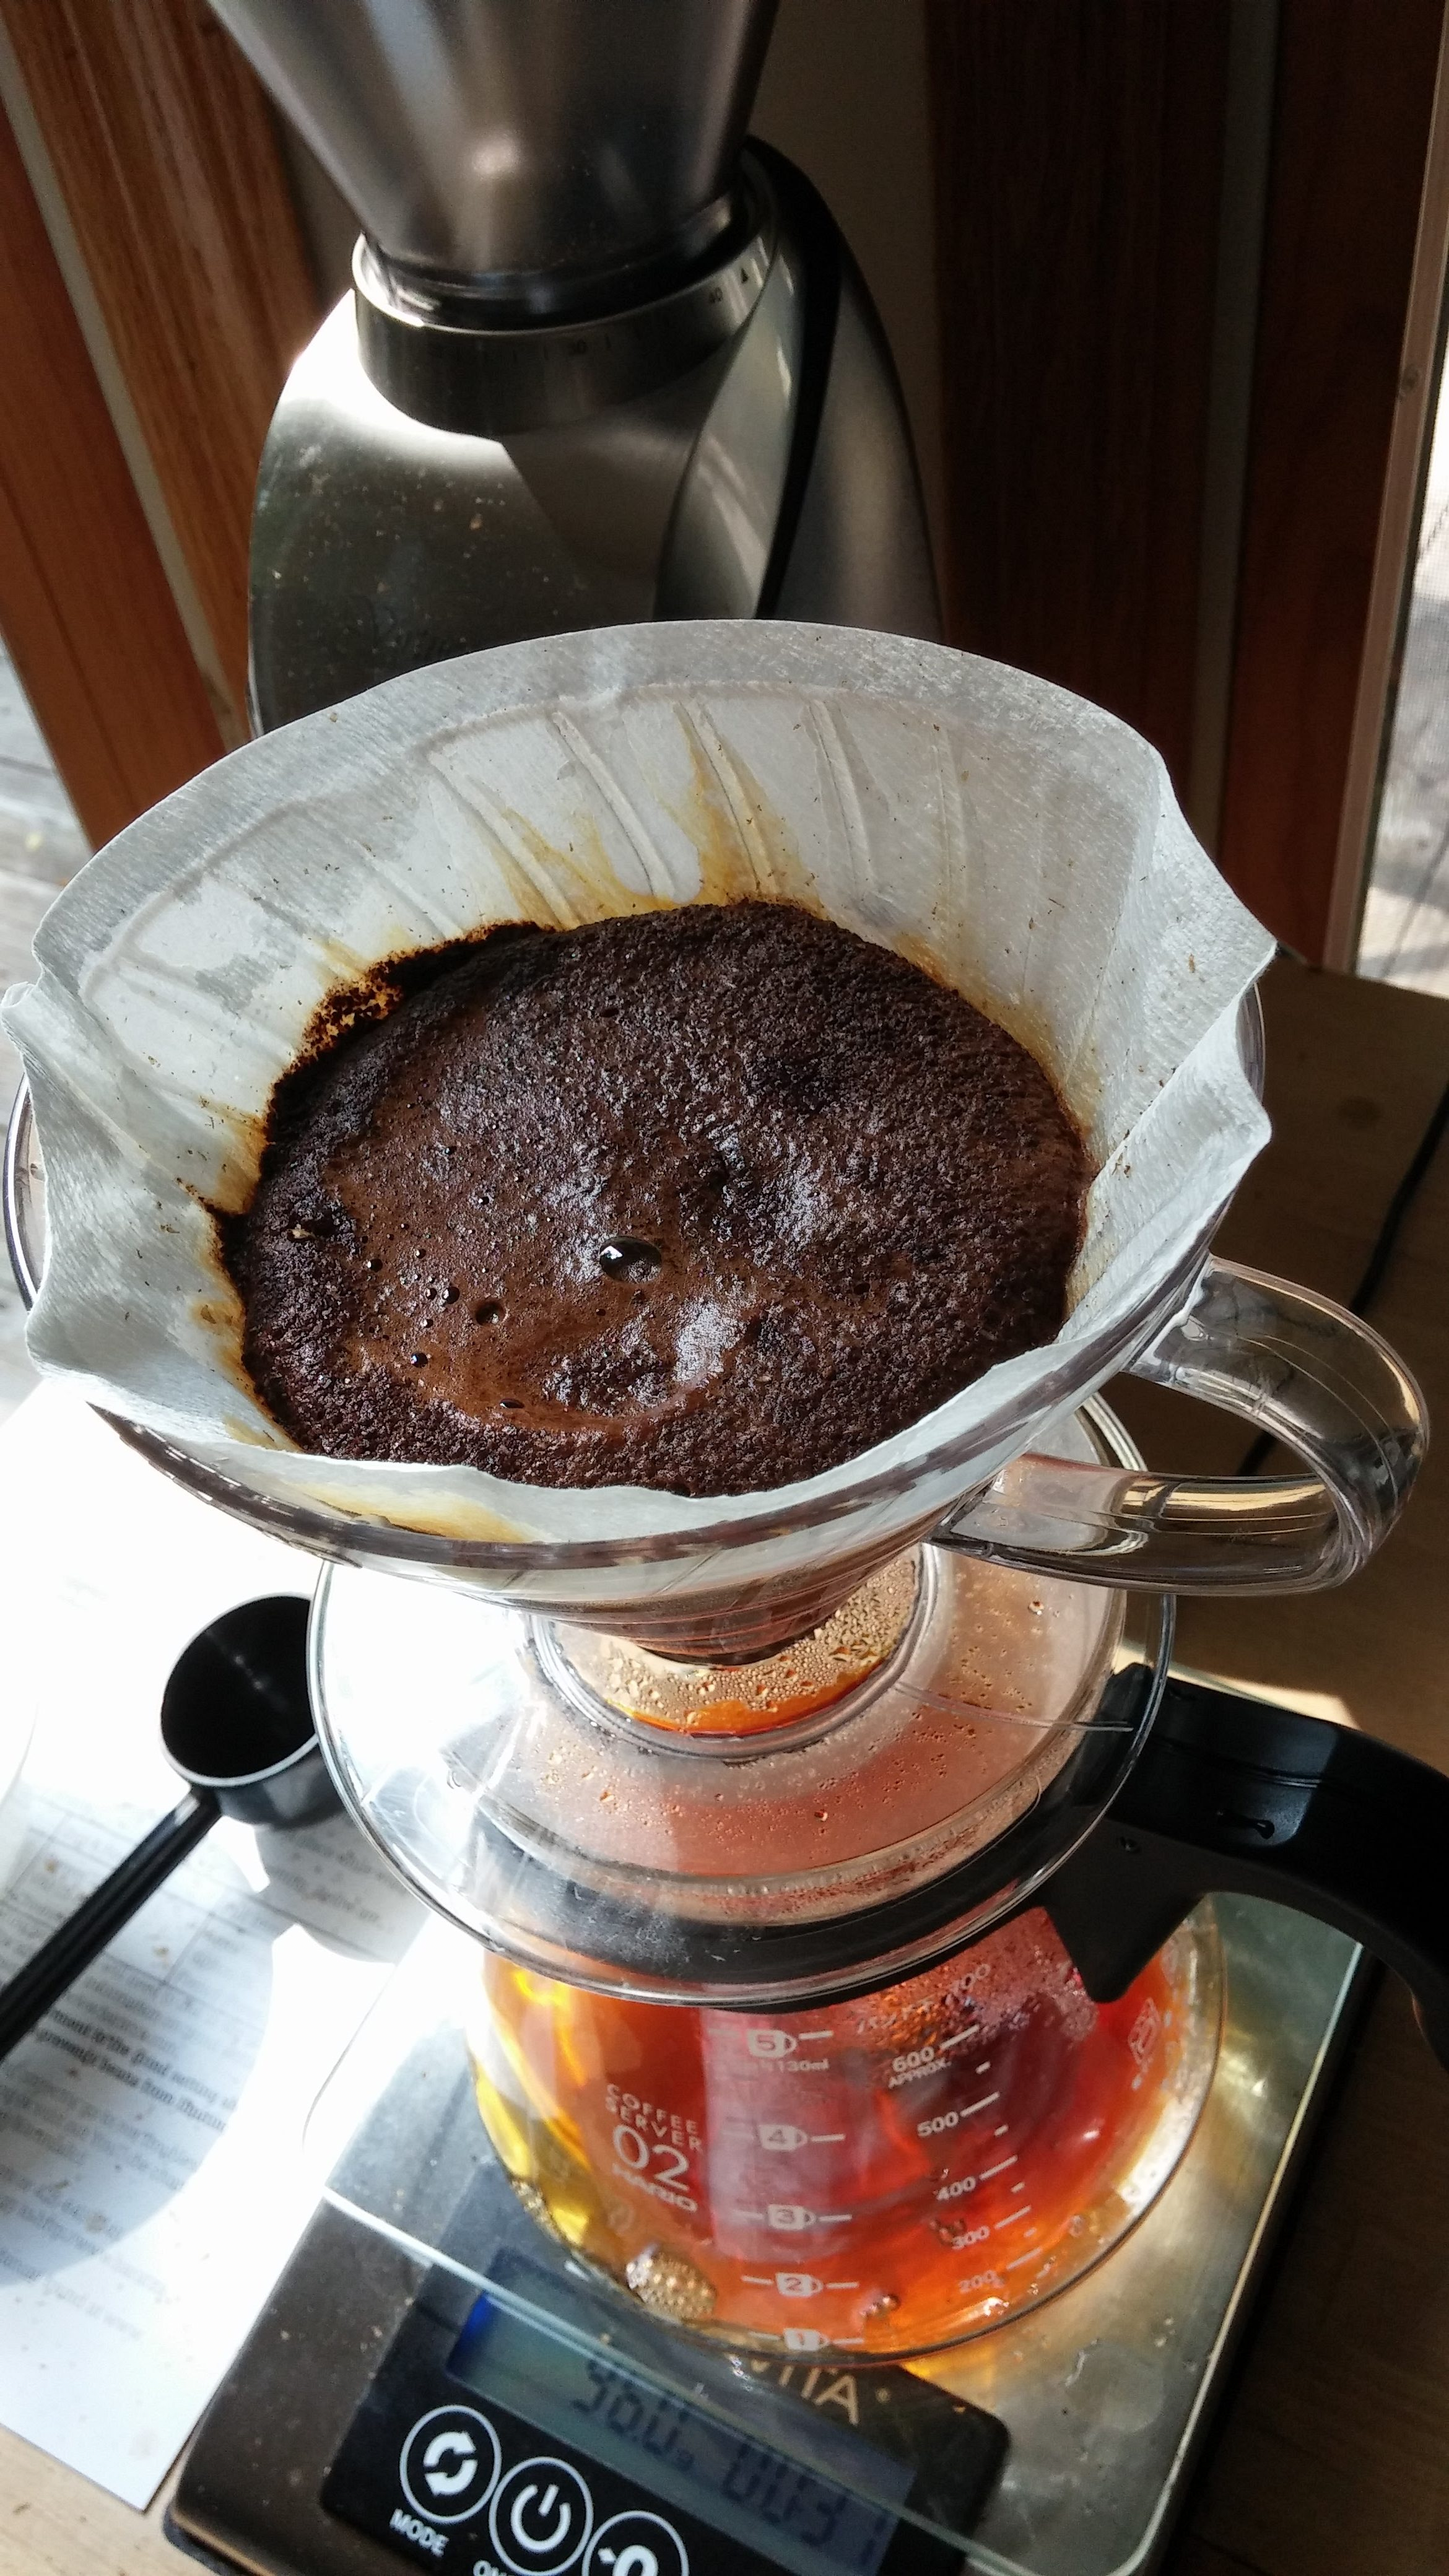 Coffee Companion Kevin Sinnott Brewing Expert Hario Syphon Nouveau Nca 3 I Took Three Month Old Beans From My Freshness System Canister And Brewed A V60 Batch Notice The Gentle Foam Signaling Fresh Oh Yeah